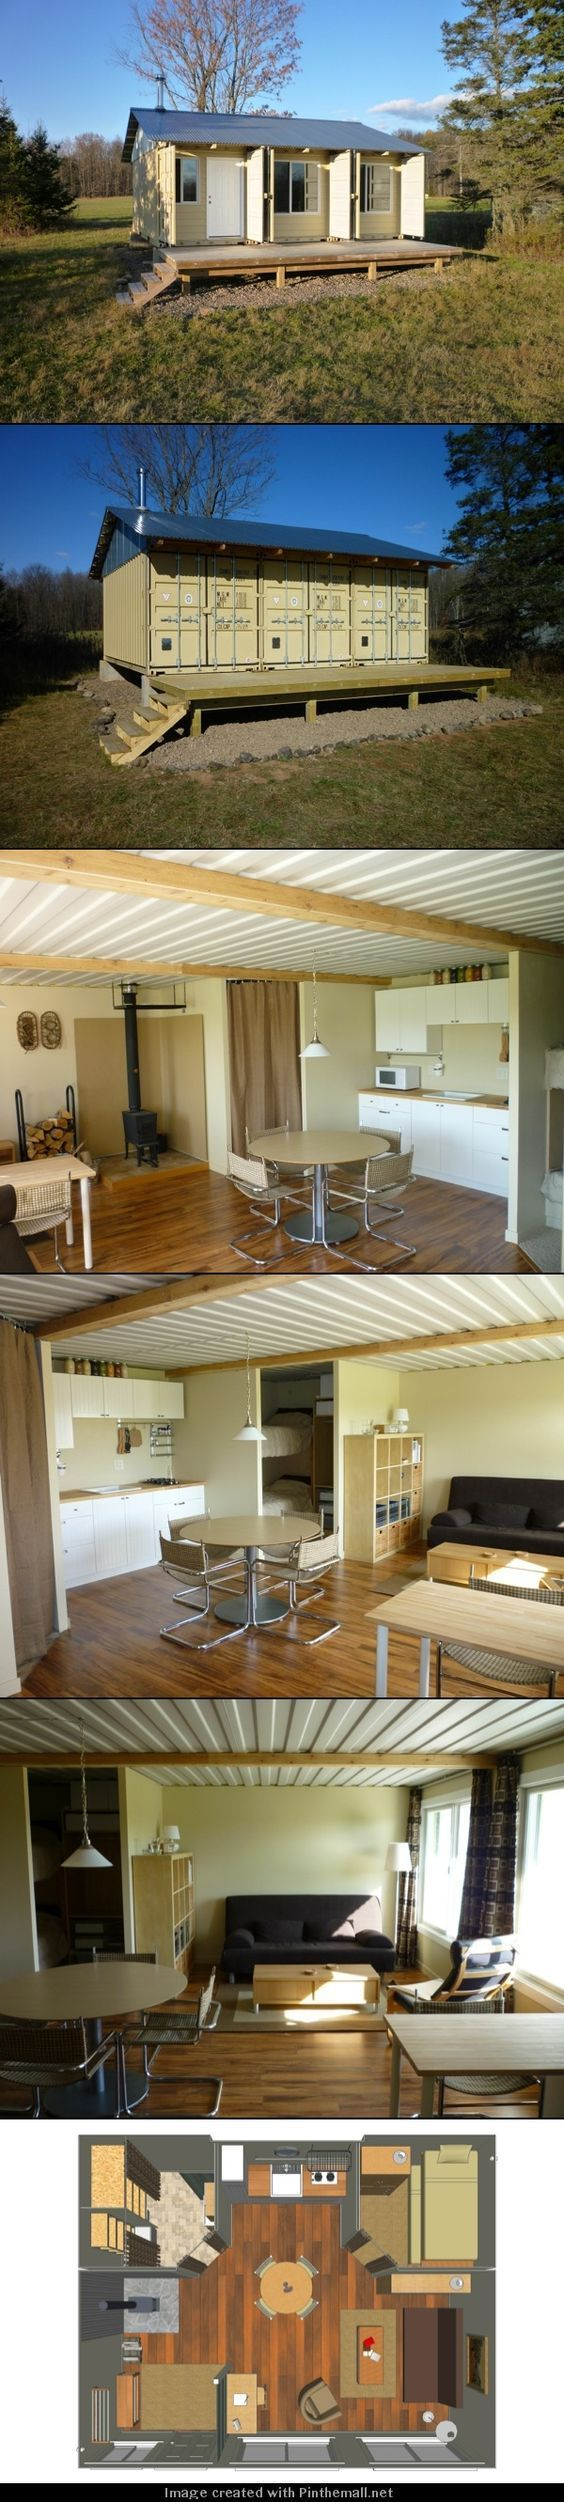 Container house::